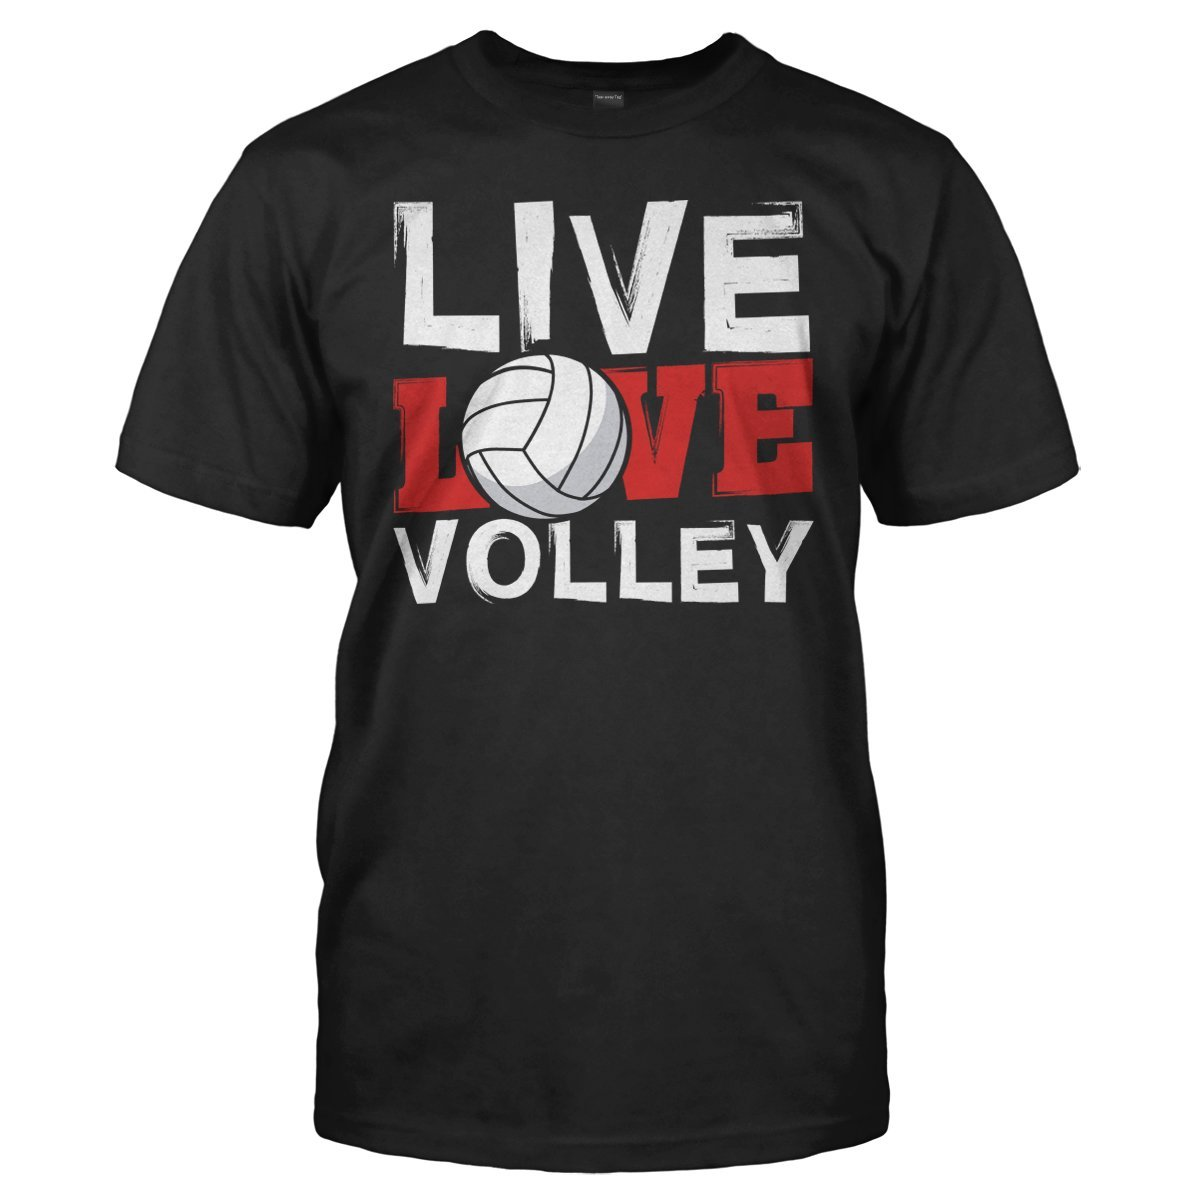 Live Love Volley - T Shirt